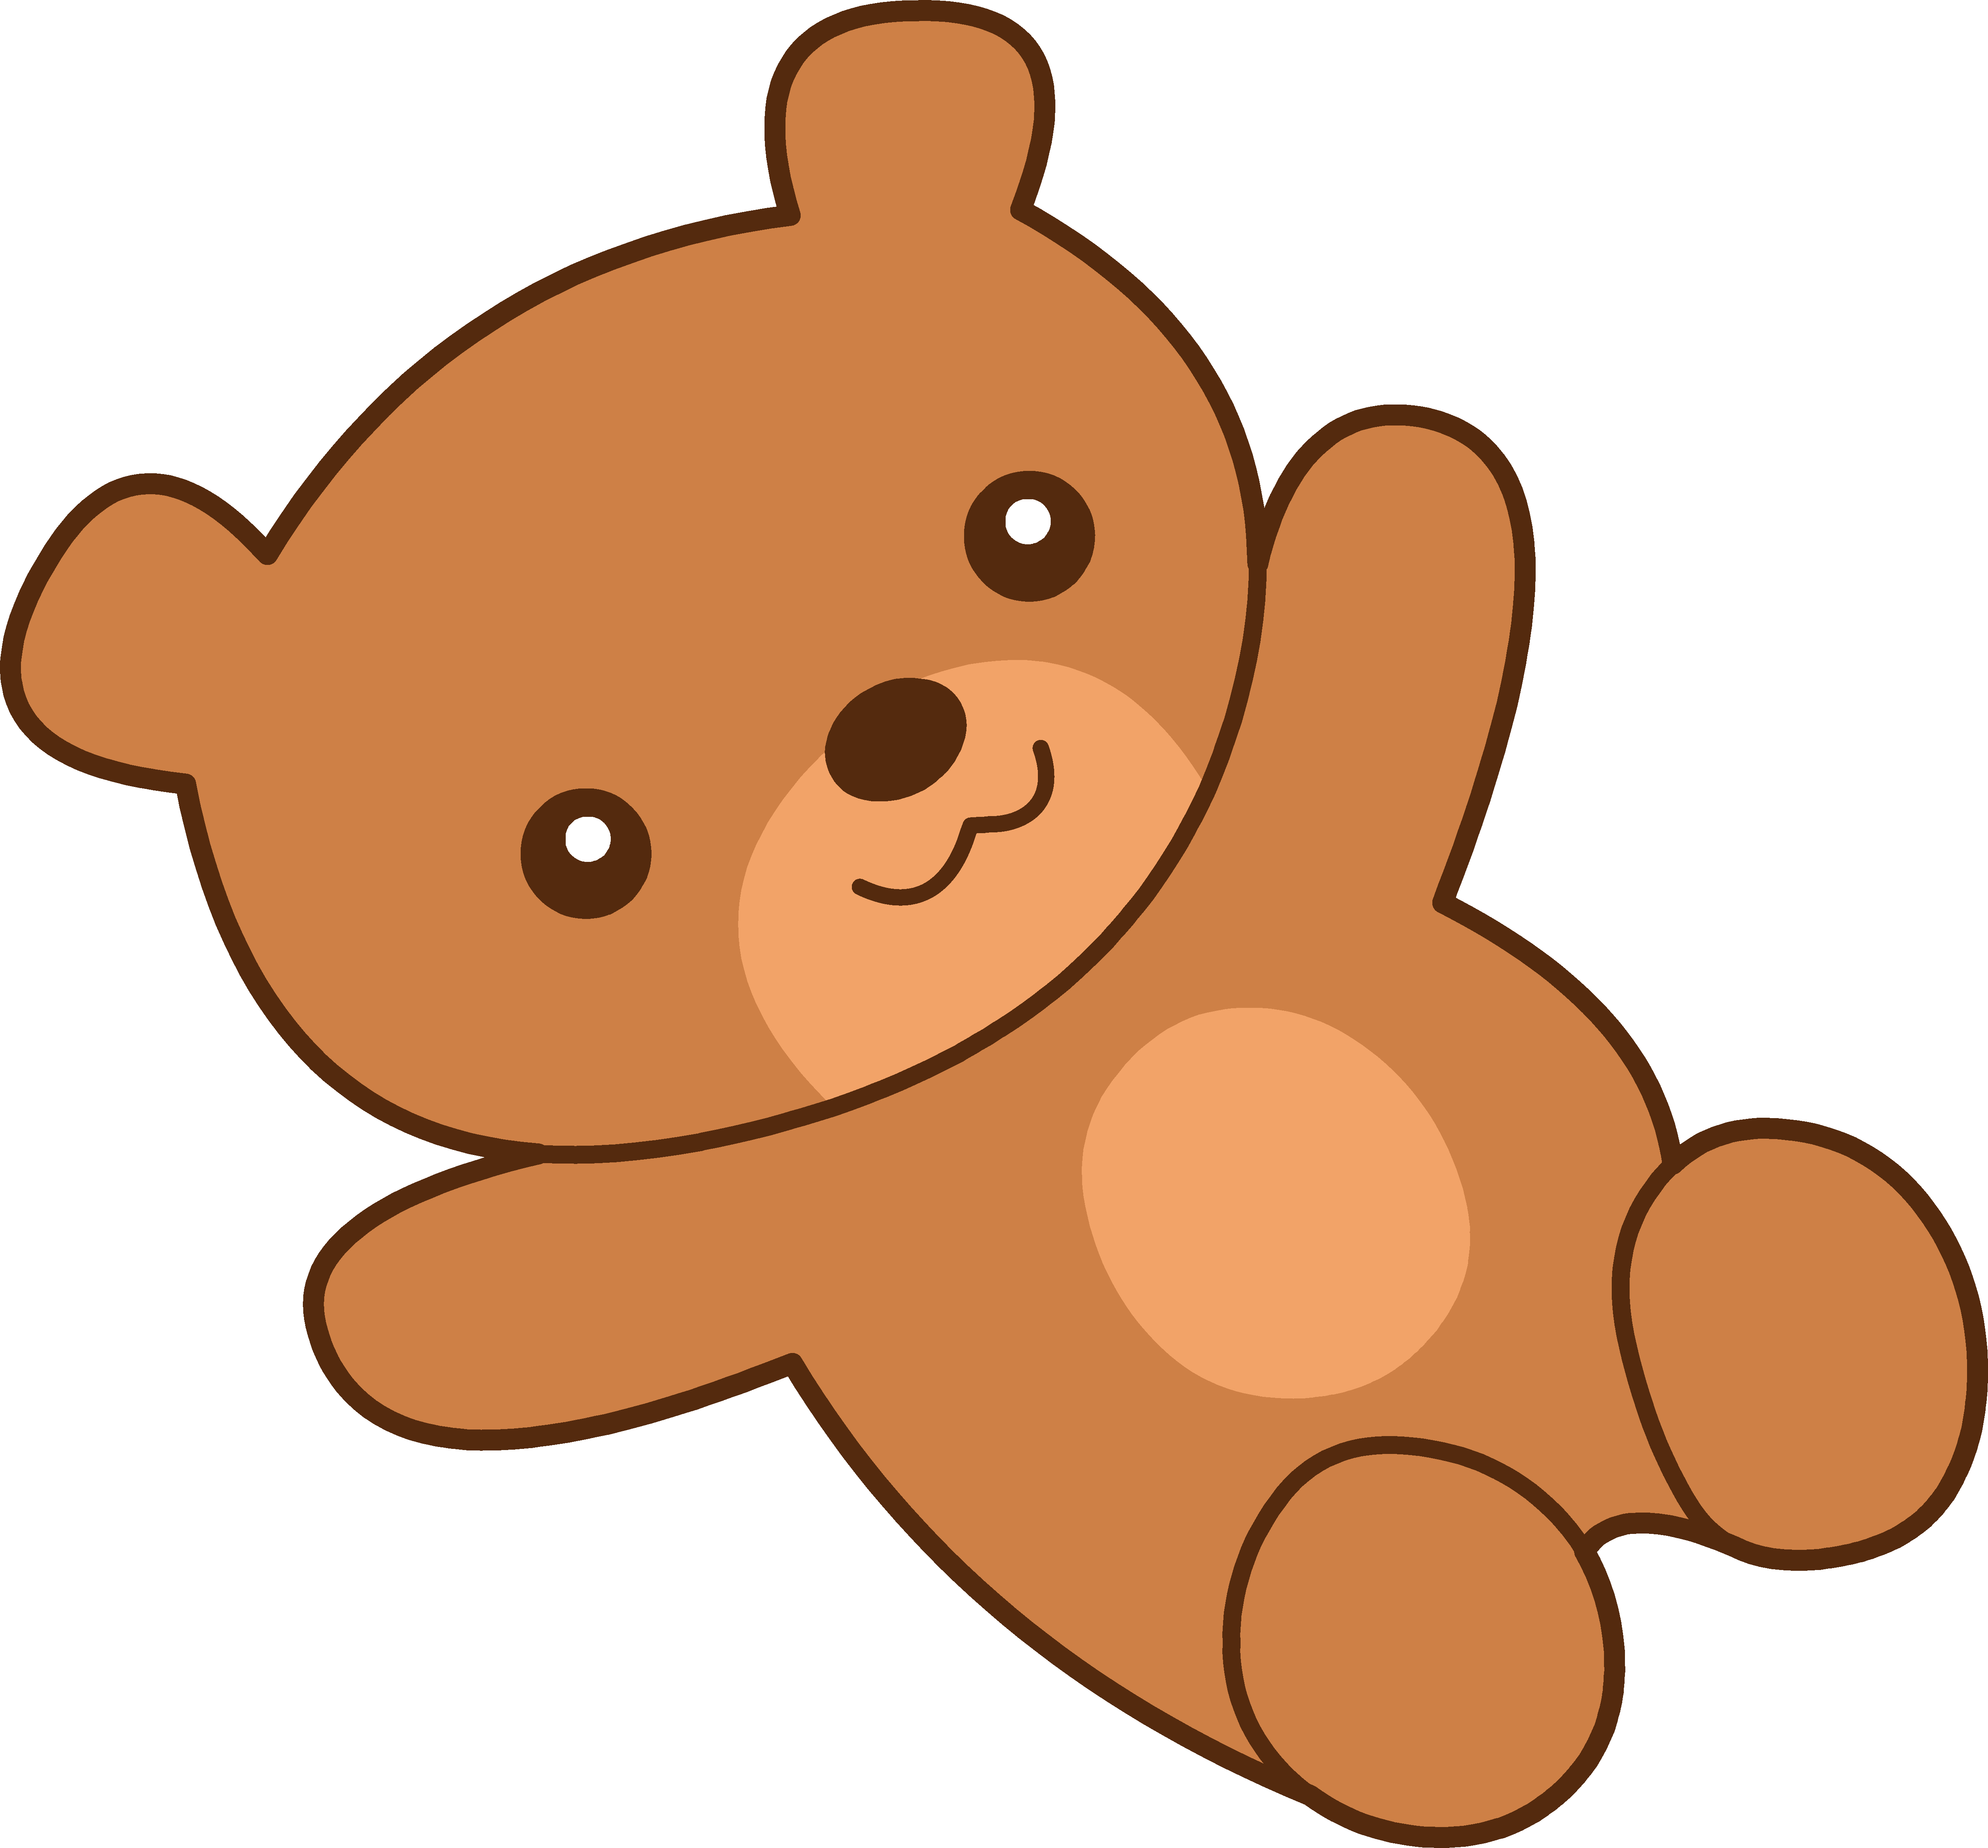 5120x4760 Cute Brown Teddy Bear Clipart